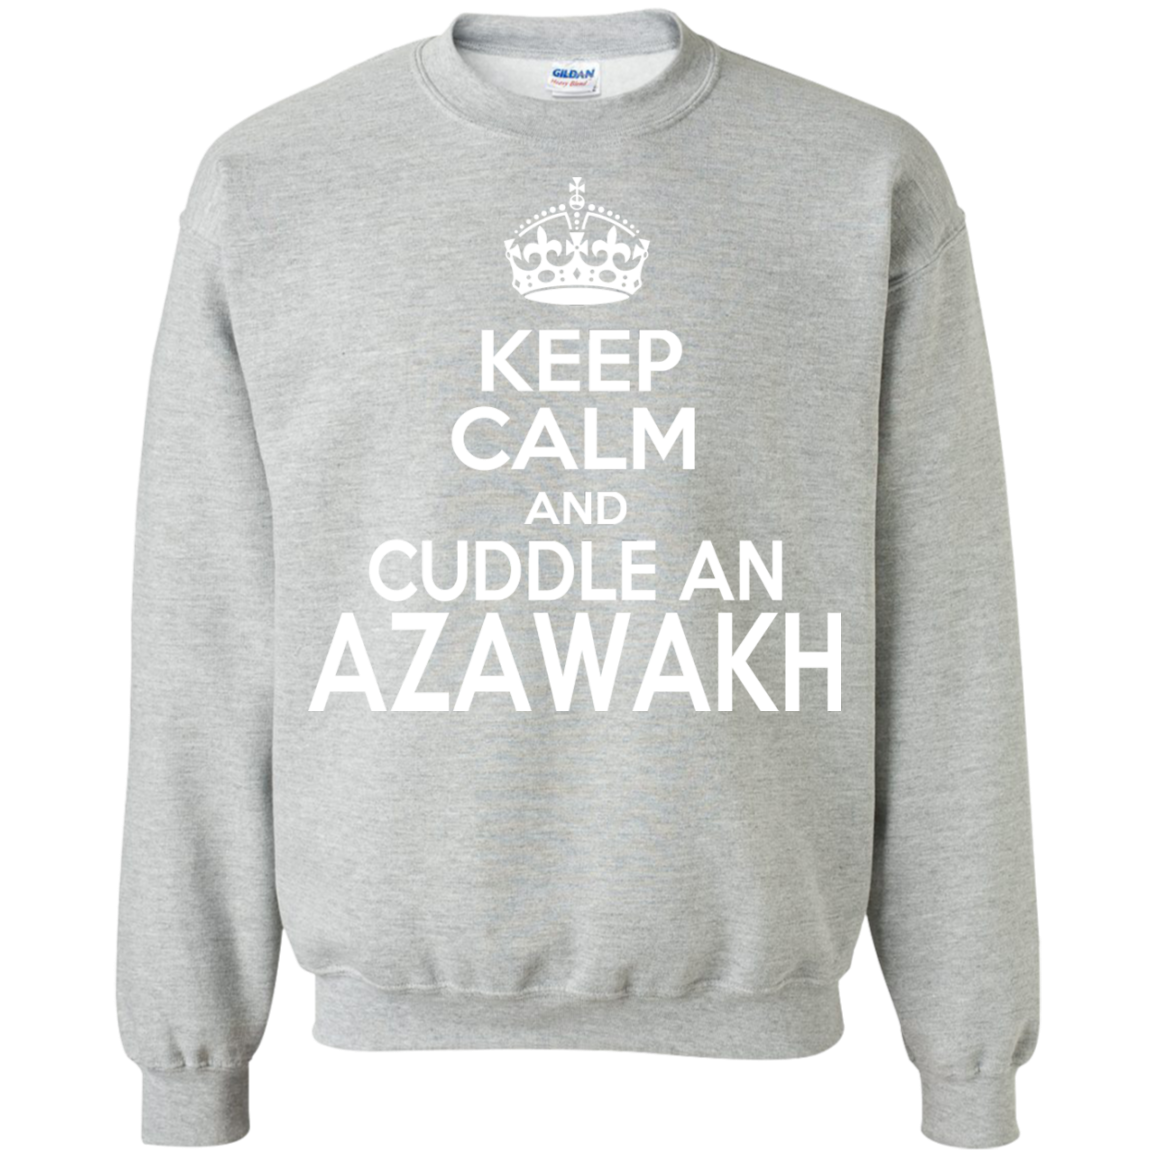 Keep Calm And Cuddle An Azawakh Sweatshirts